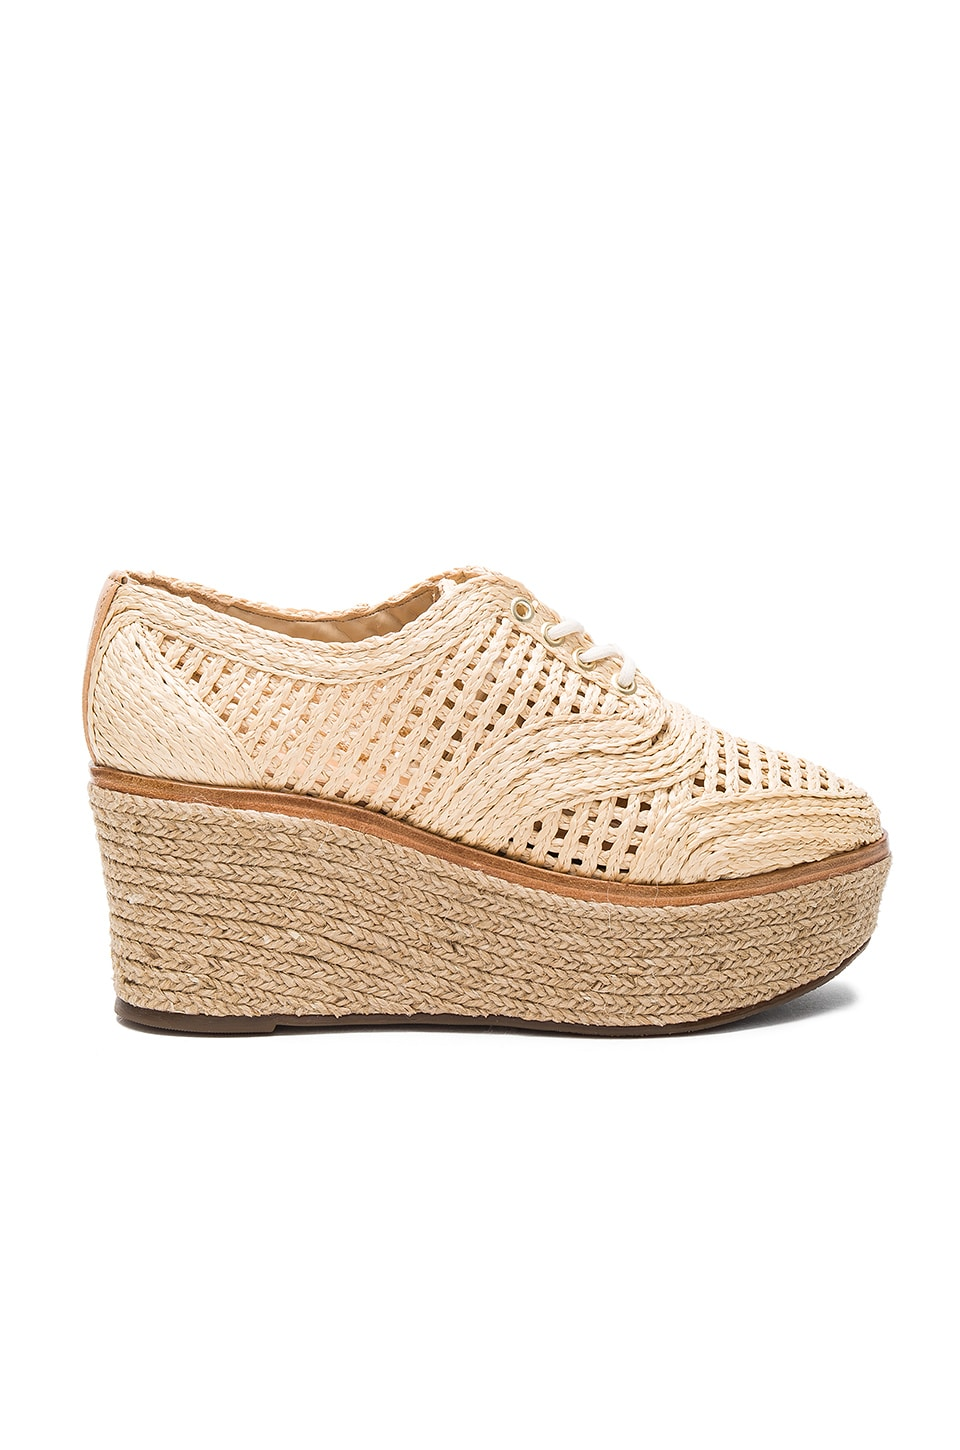 Schutz Jules Espadrille Flatform in Natural & Amber Light